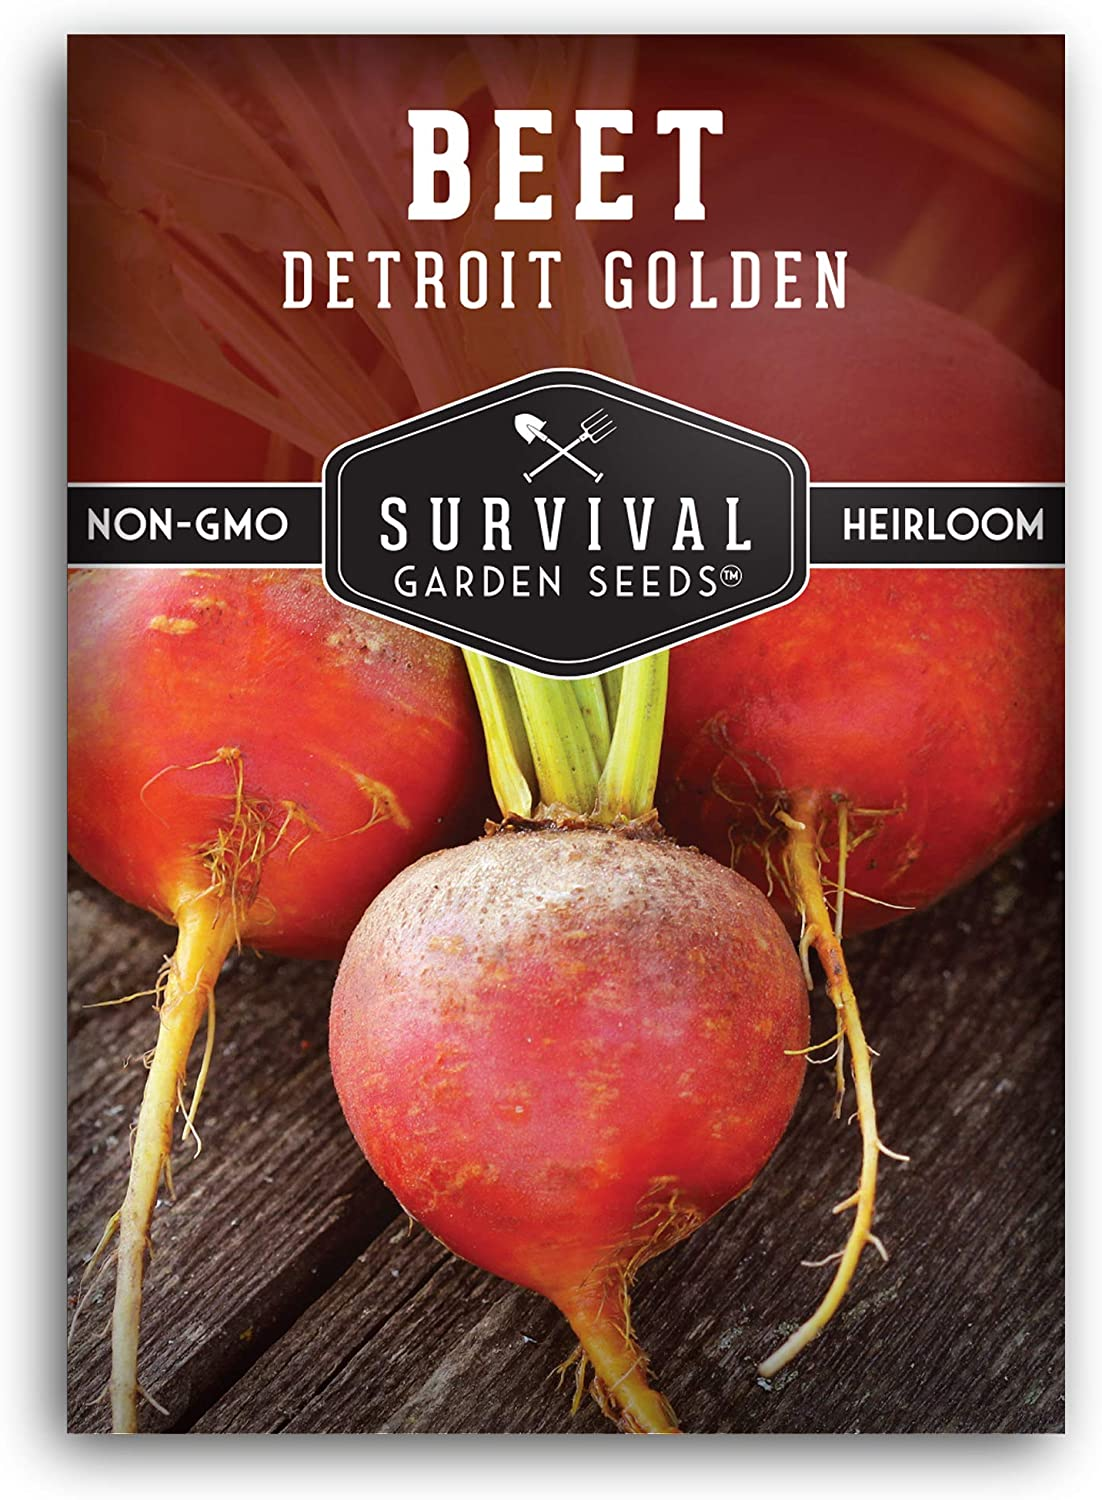 Survival Garden Seeds - Detroit Golden Beet Seed for Planting - Packet with Instructions to Plant and Grow in Your Home Vegetable Garden - Non-GMO Heirloom Variety